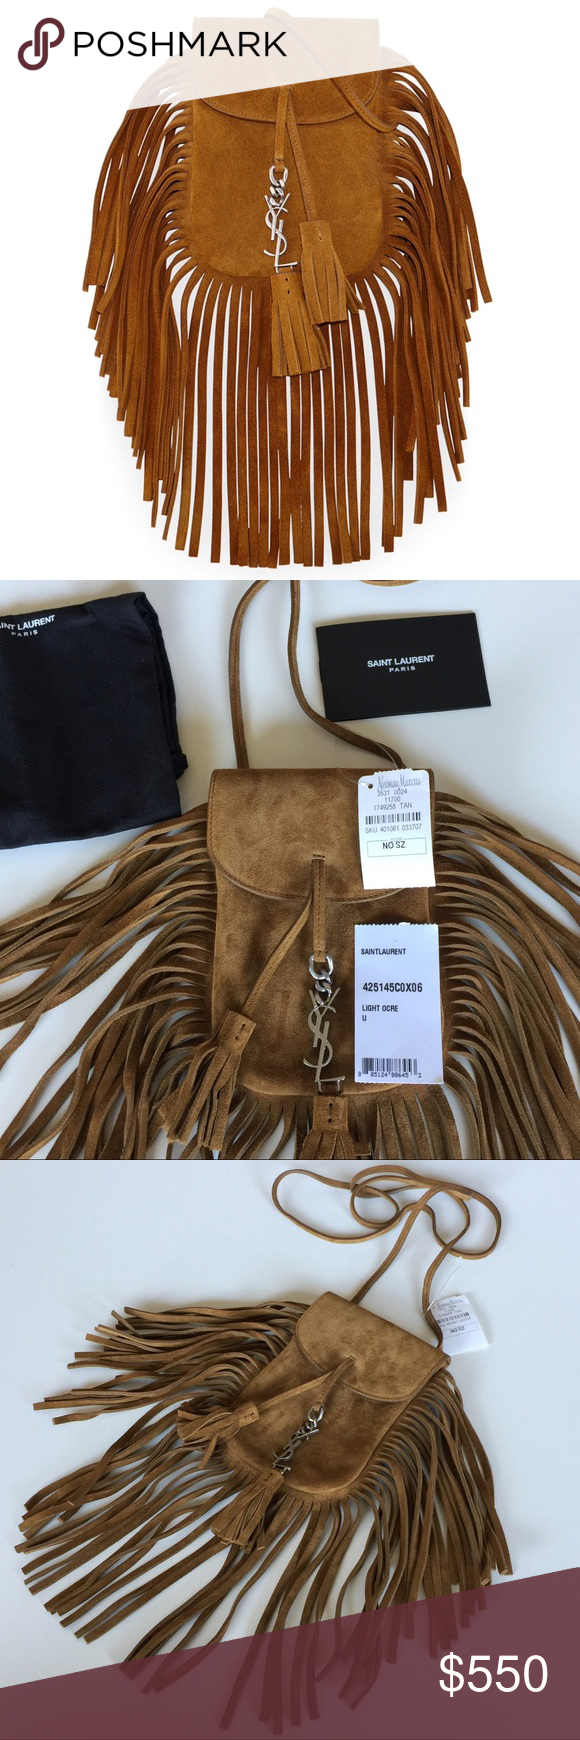 6ea3ad68d640 NEW YSL ANITA MINI FLAT CROSS-BODY BAG WITH FRINGE Authentic. Made in Italy